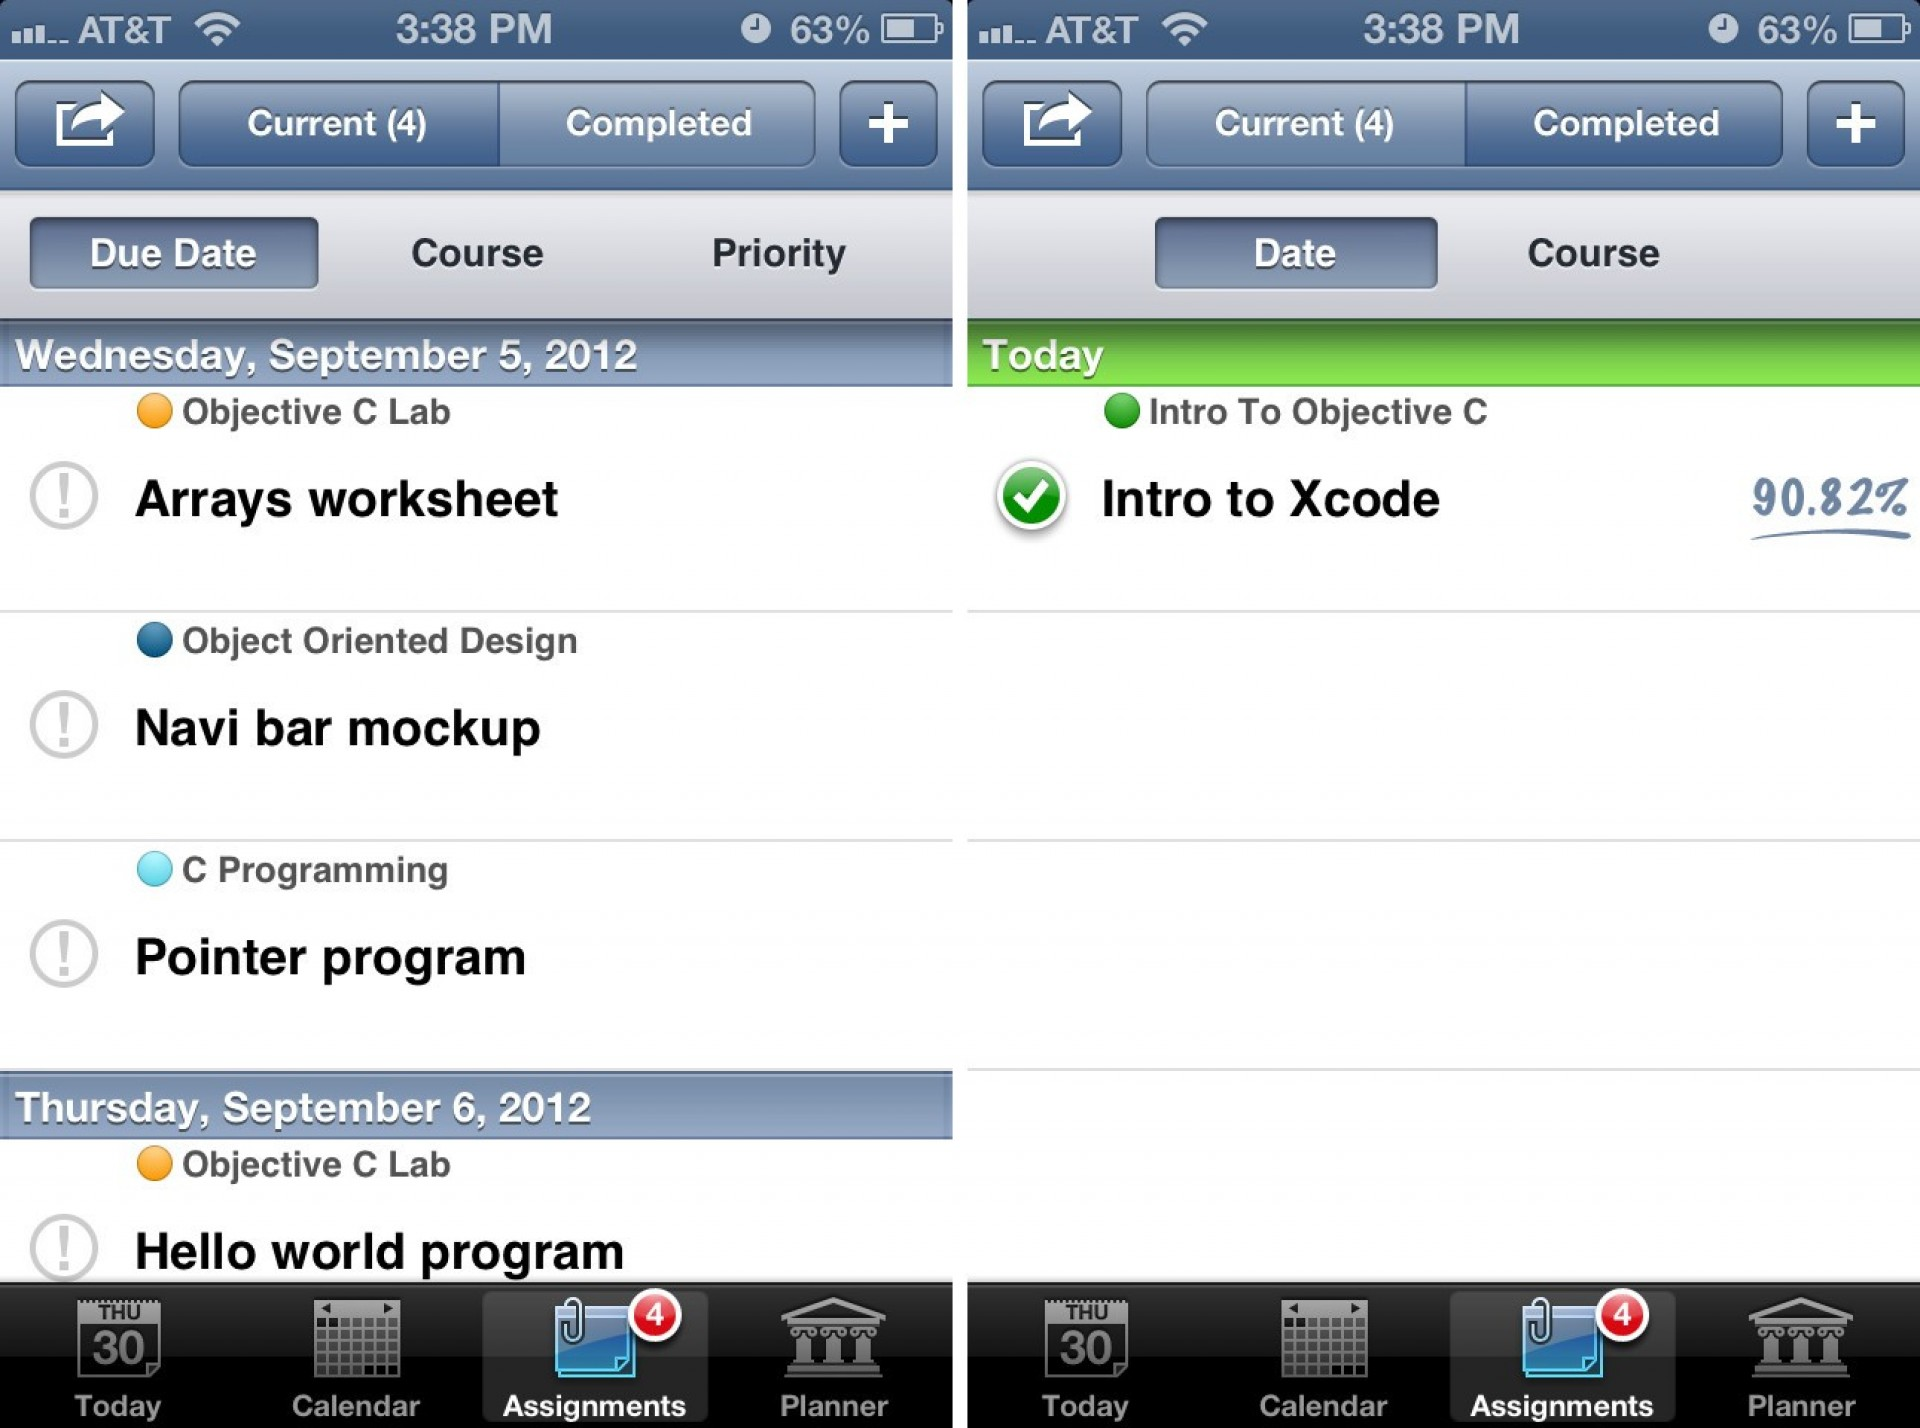 011 Research Paper How To End With Quote Istudiez Pro For Iphone Ui Stunning A Is It Bad 1920